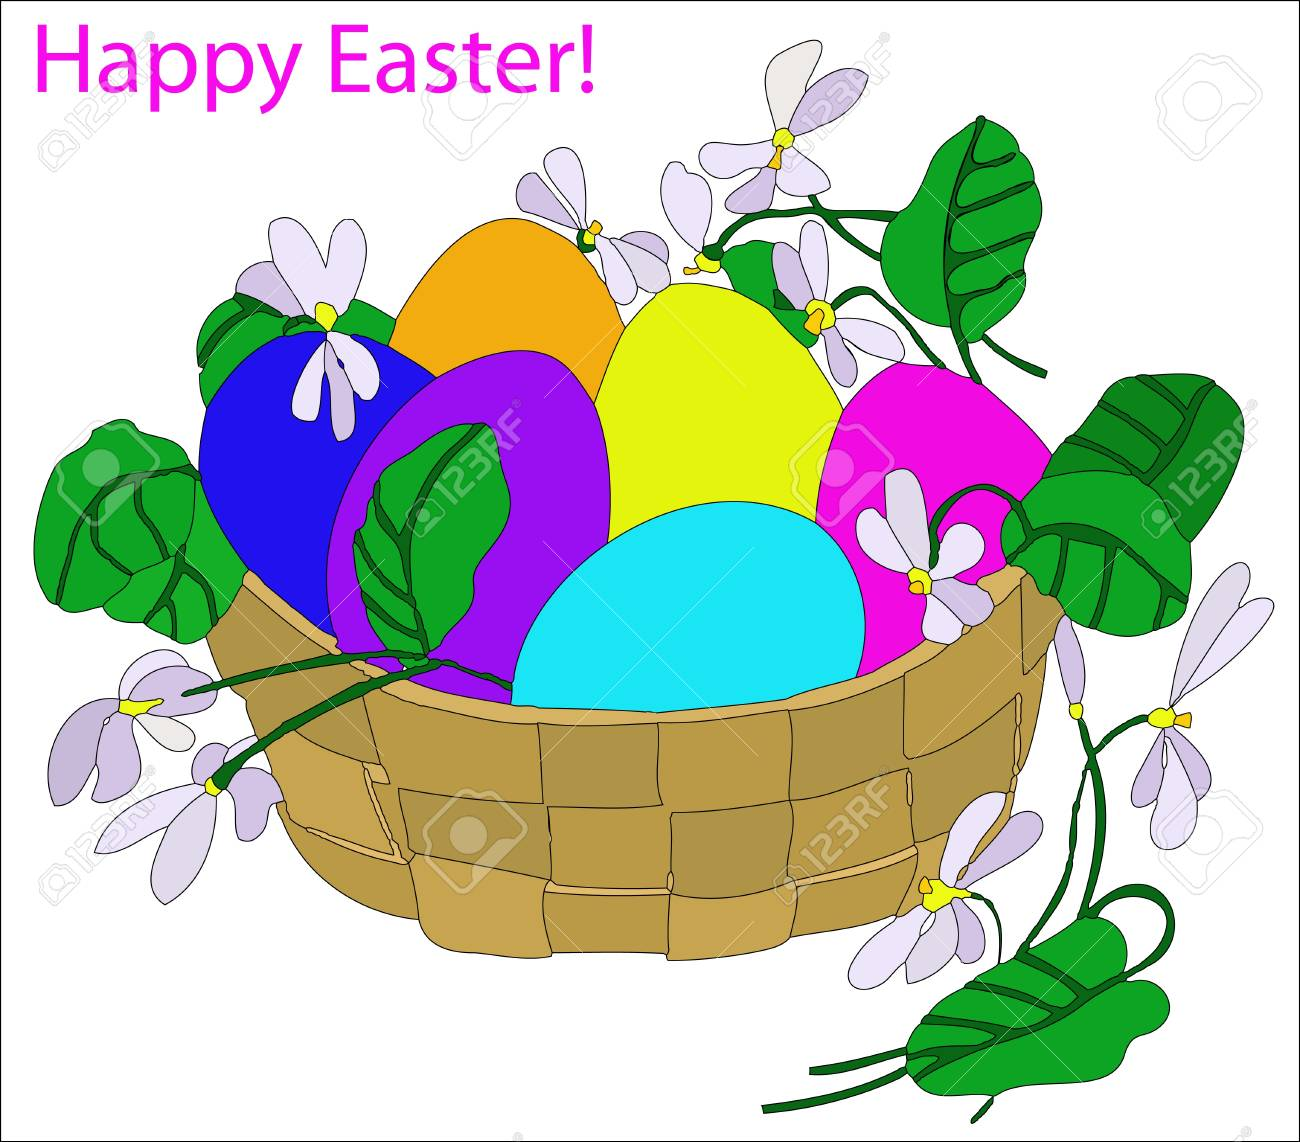 Basket with colorful Easter eggs and flowers Stock Vector - 13640558